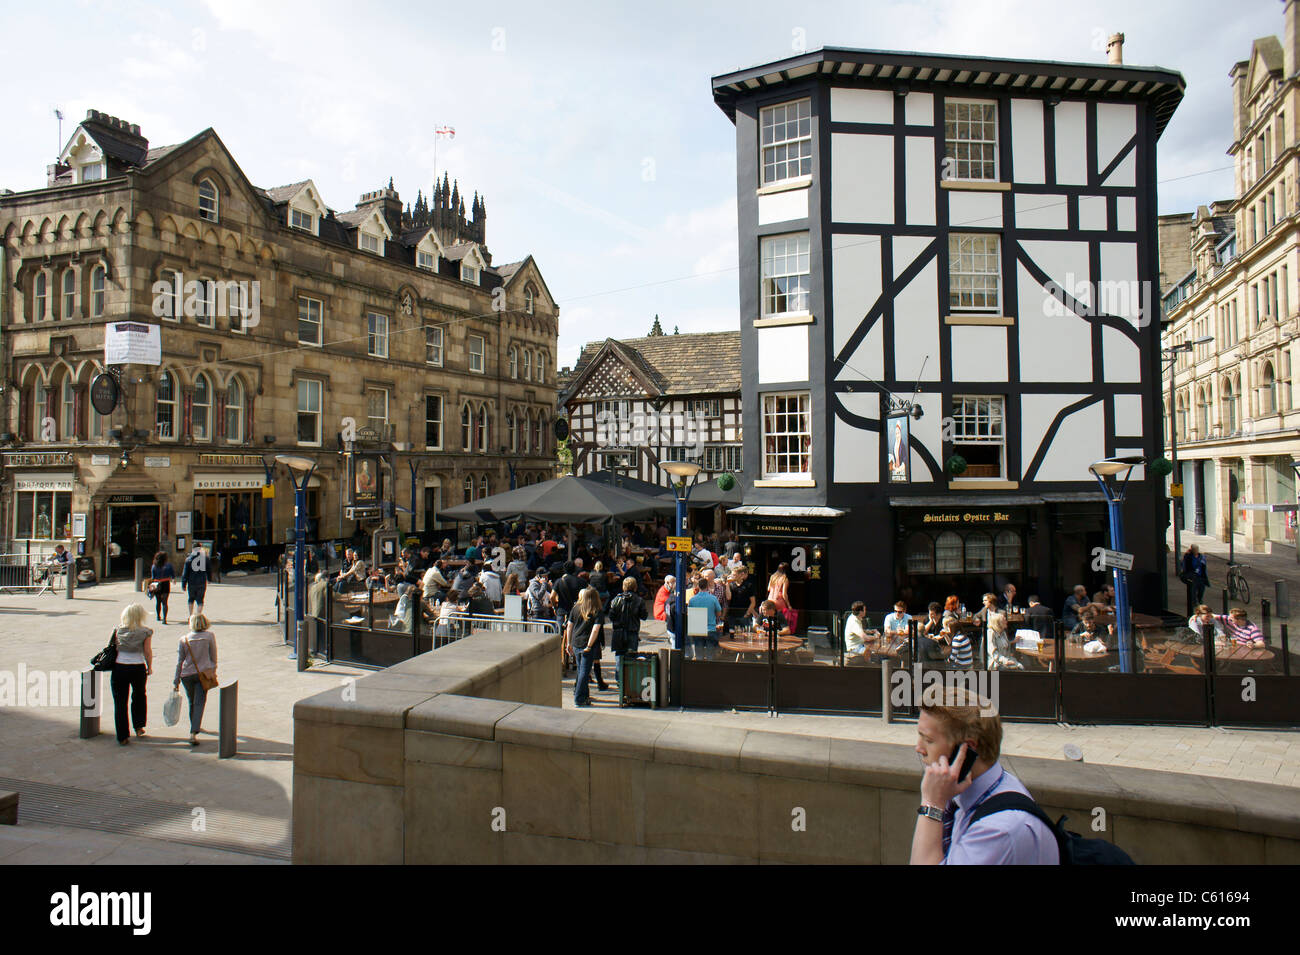 Manchester city centre. The Old Wellington Inn (1552) and Sinclairs Oyster Bar in Shambles Square. Cathedral precinct Stock Photo